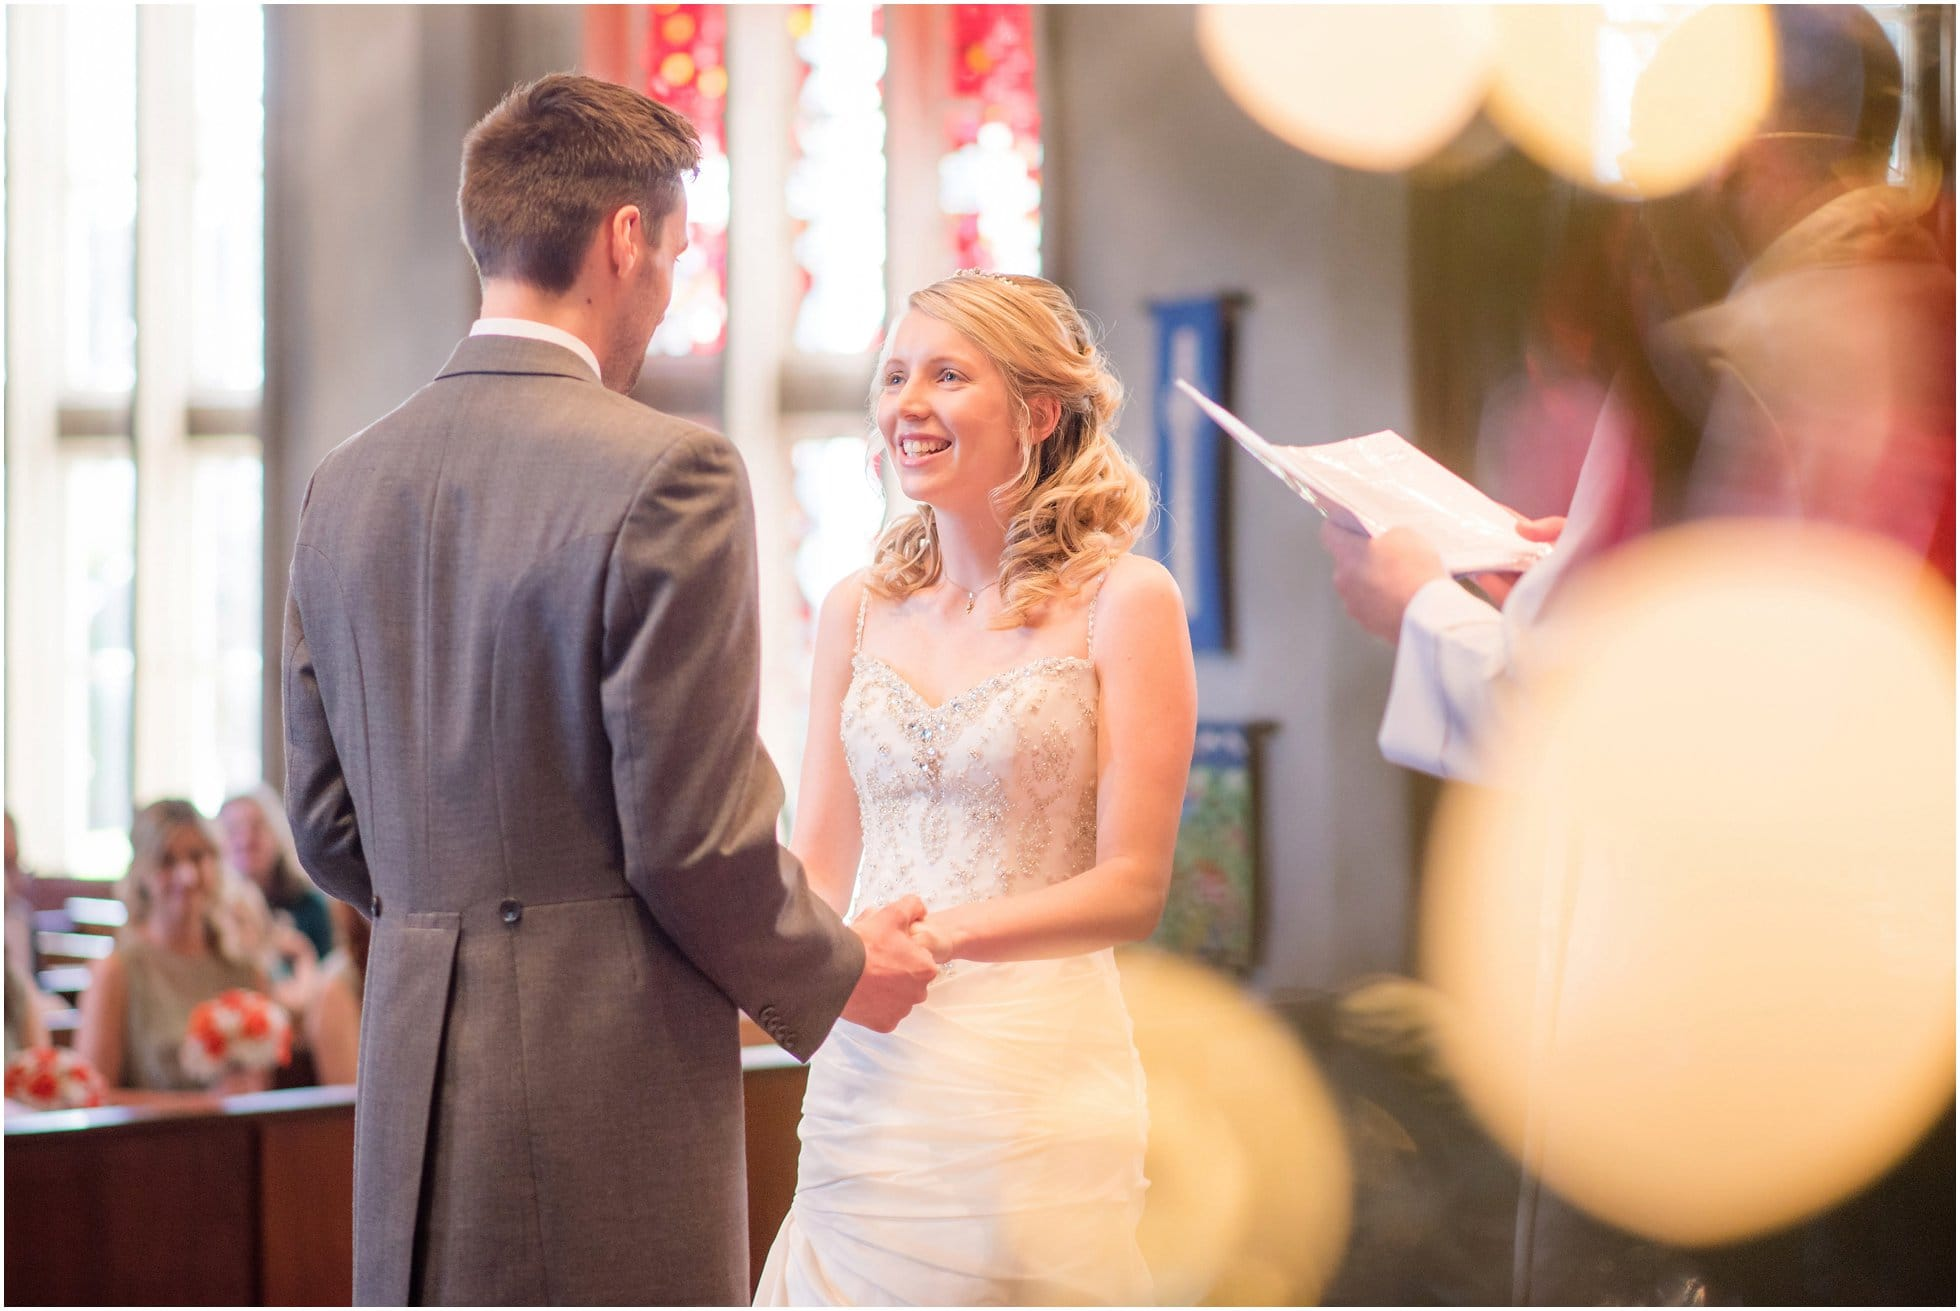 Birstall Church Wedding photography by Winston Sanders - the vows